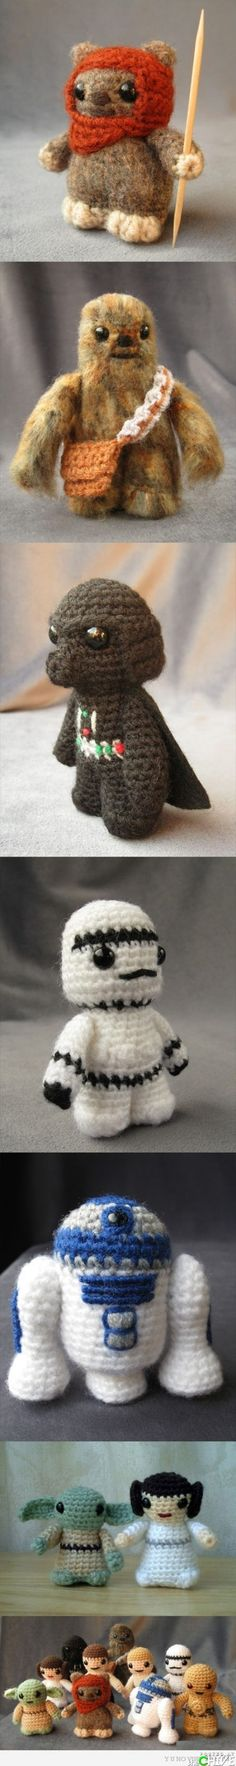 Knitted Star Wars